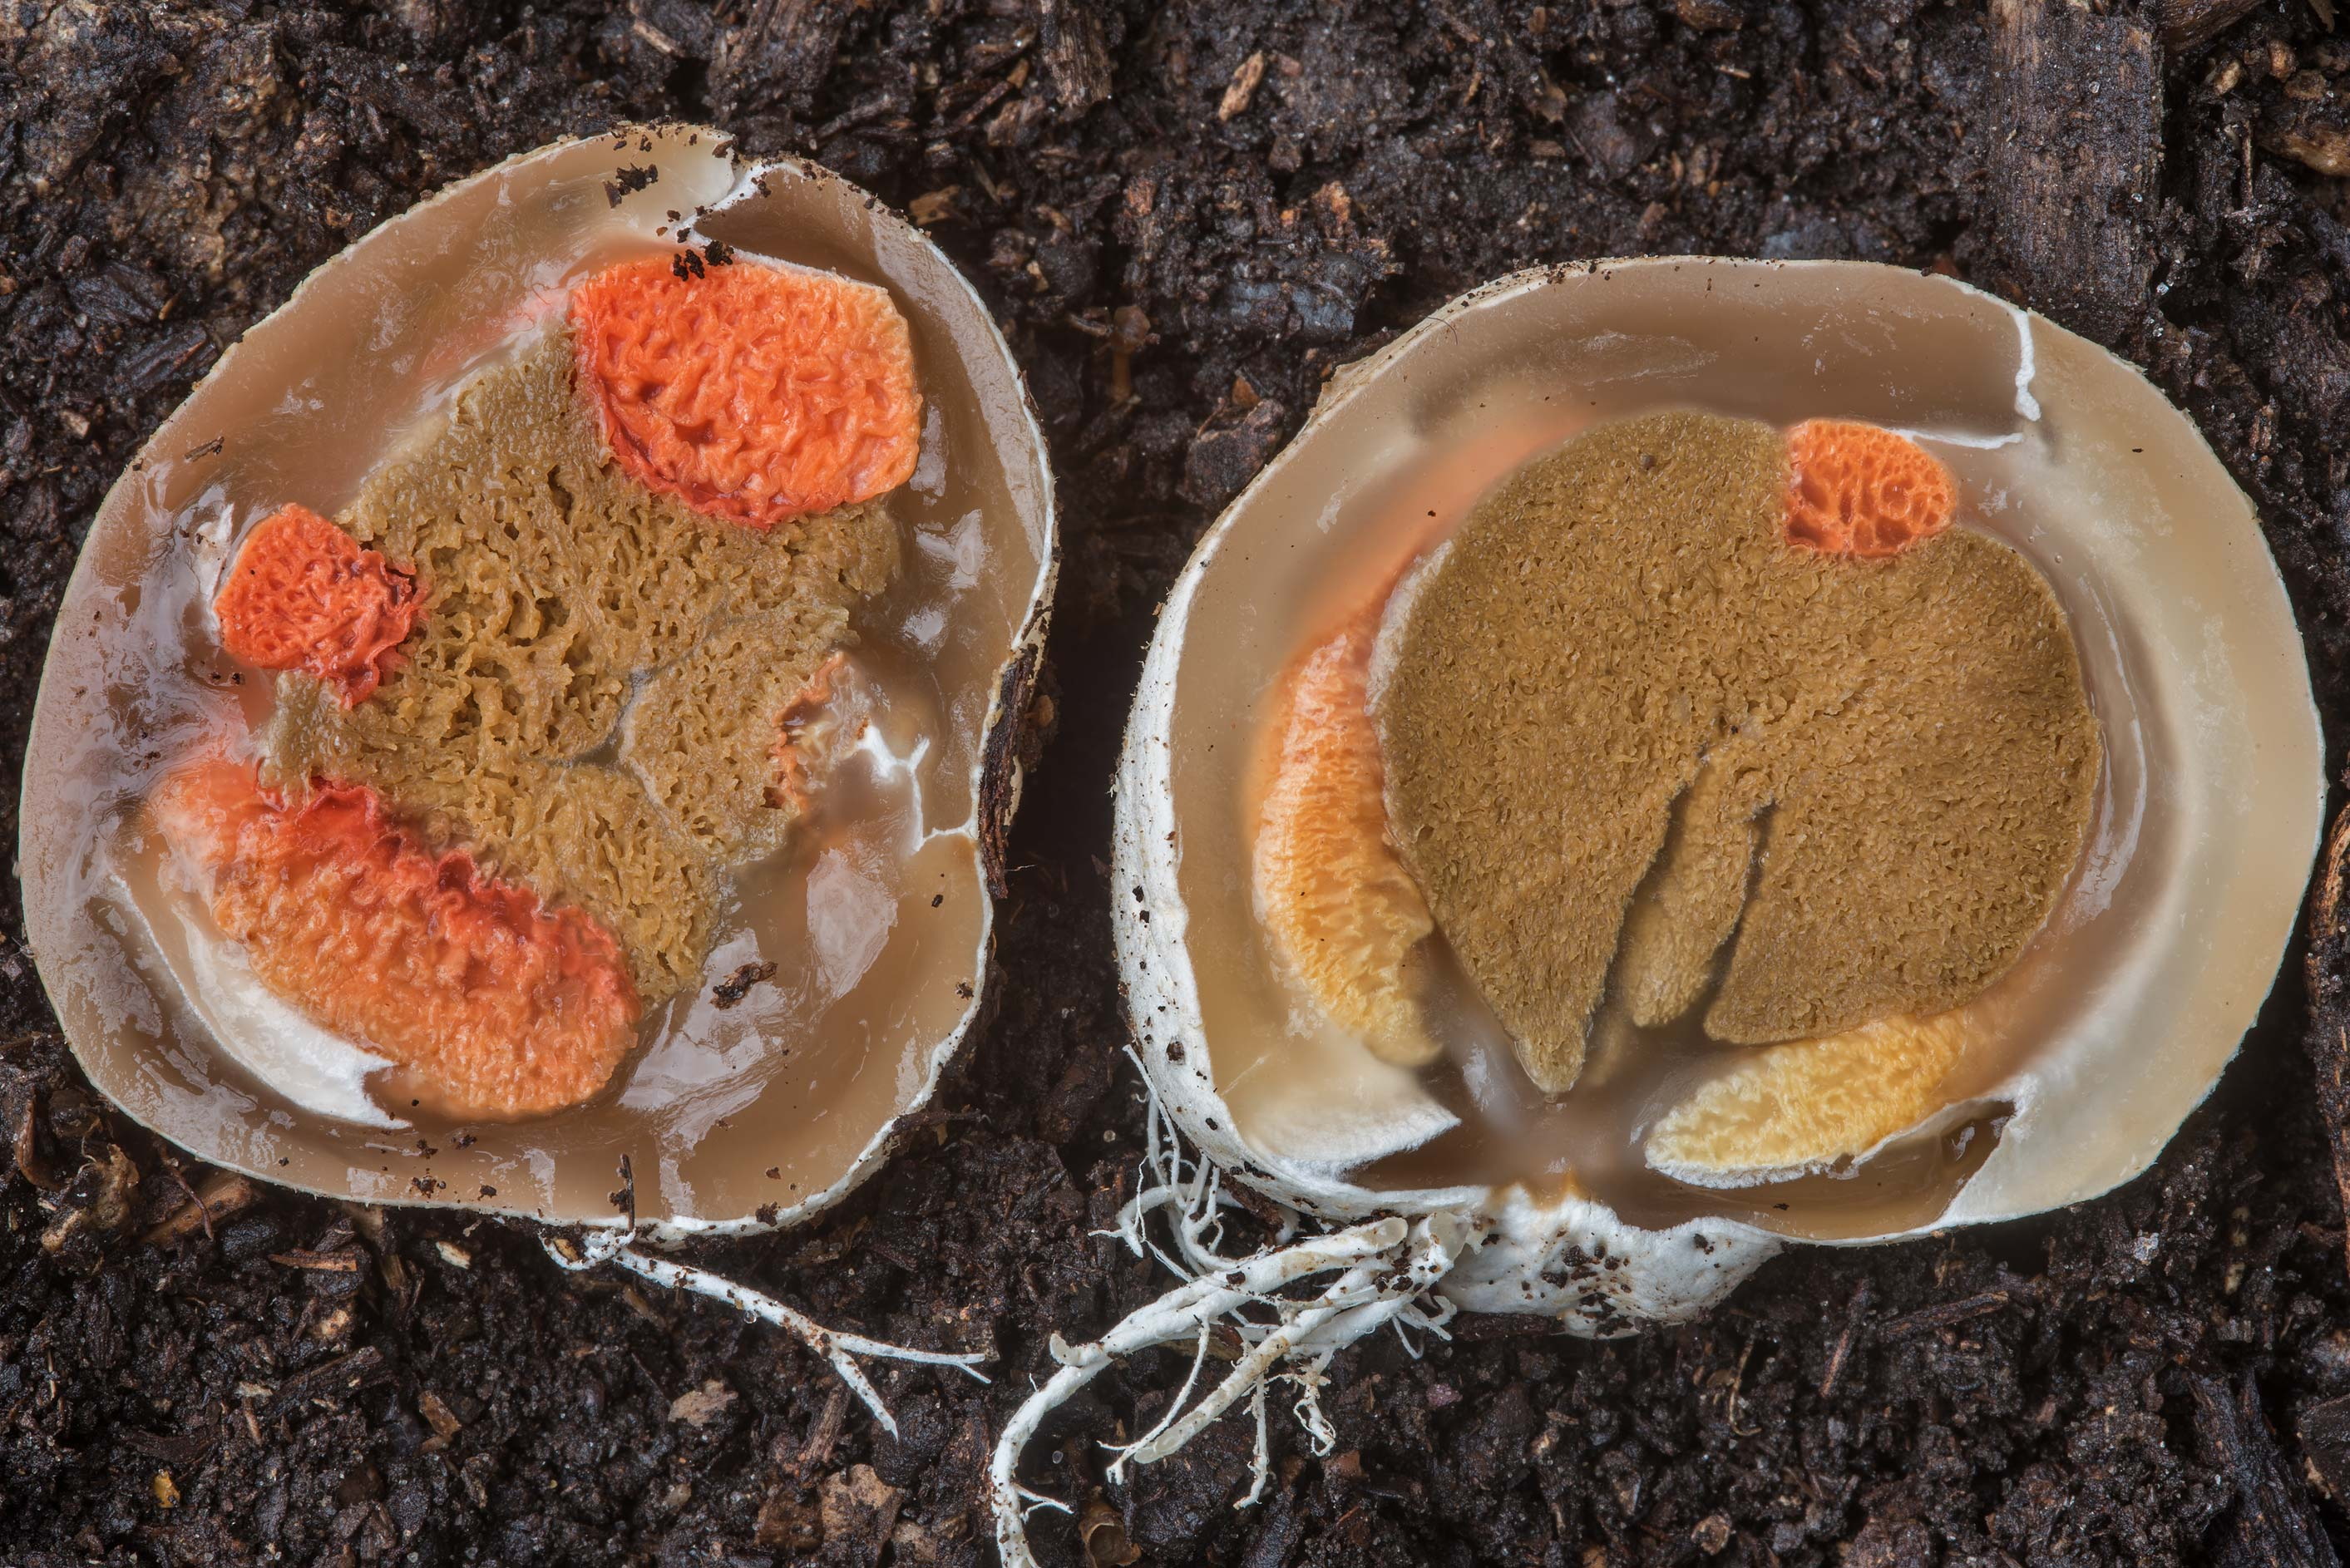 Dissected egg of Columned Stinkhorn mushroom...Bee Creek Park. College Station, Texas